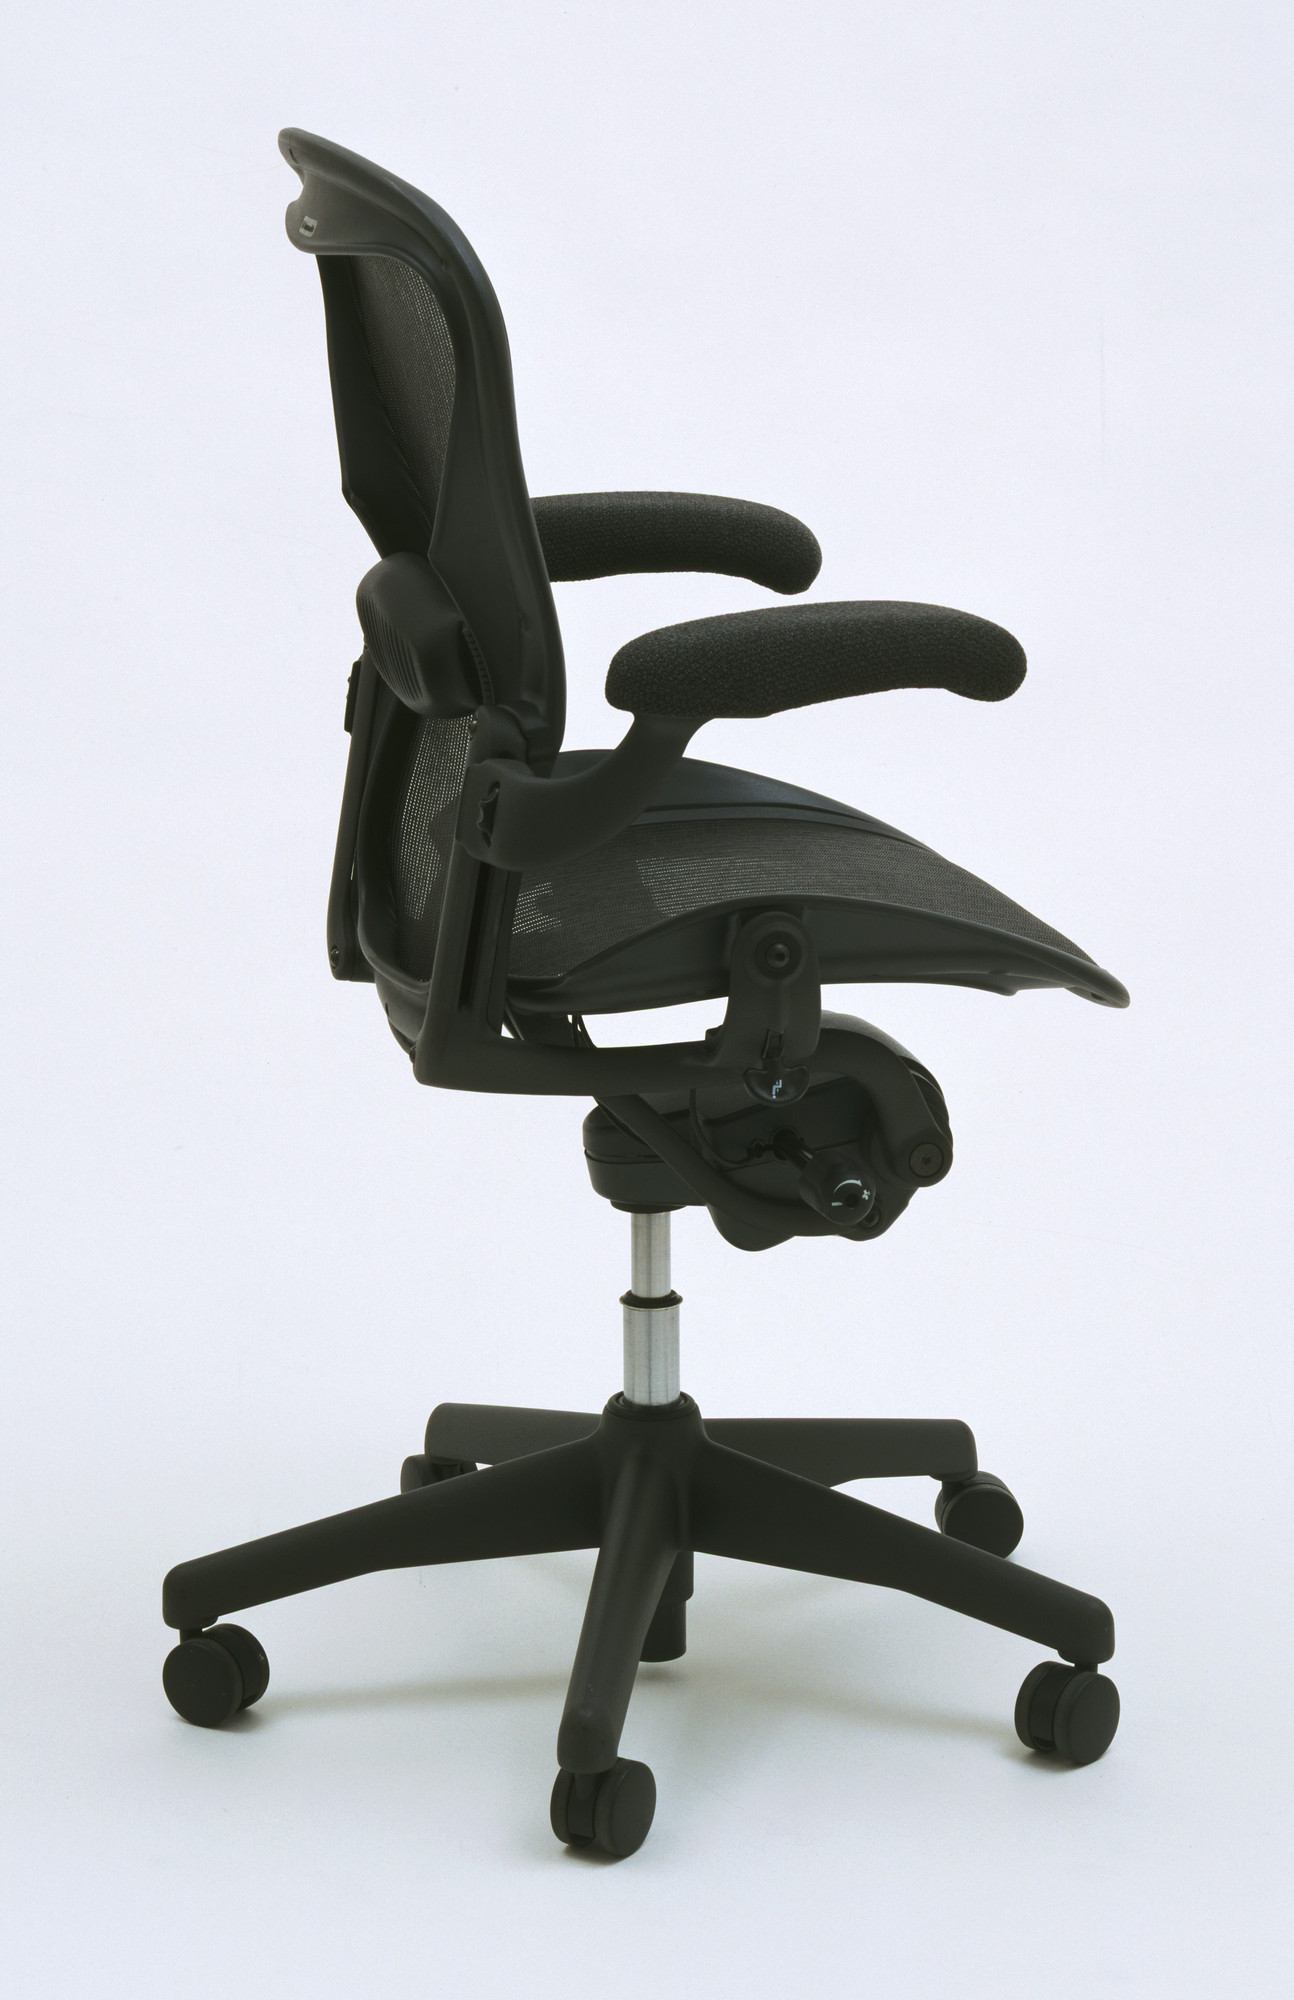 Donald T. Chadwick, William Stumpf. Aeron Office Chair. 1992